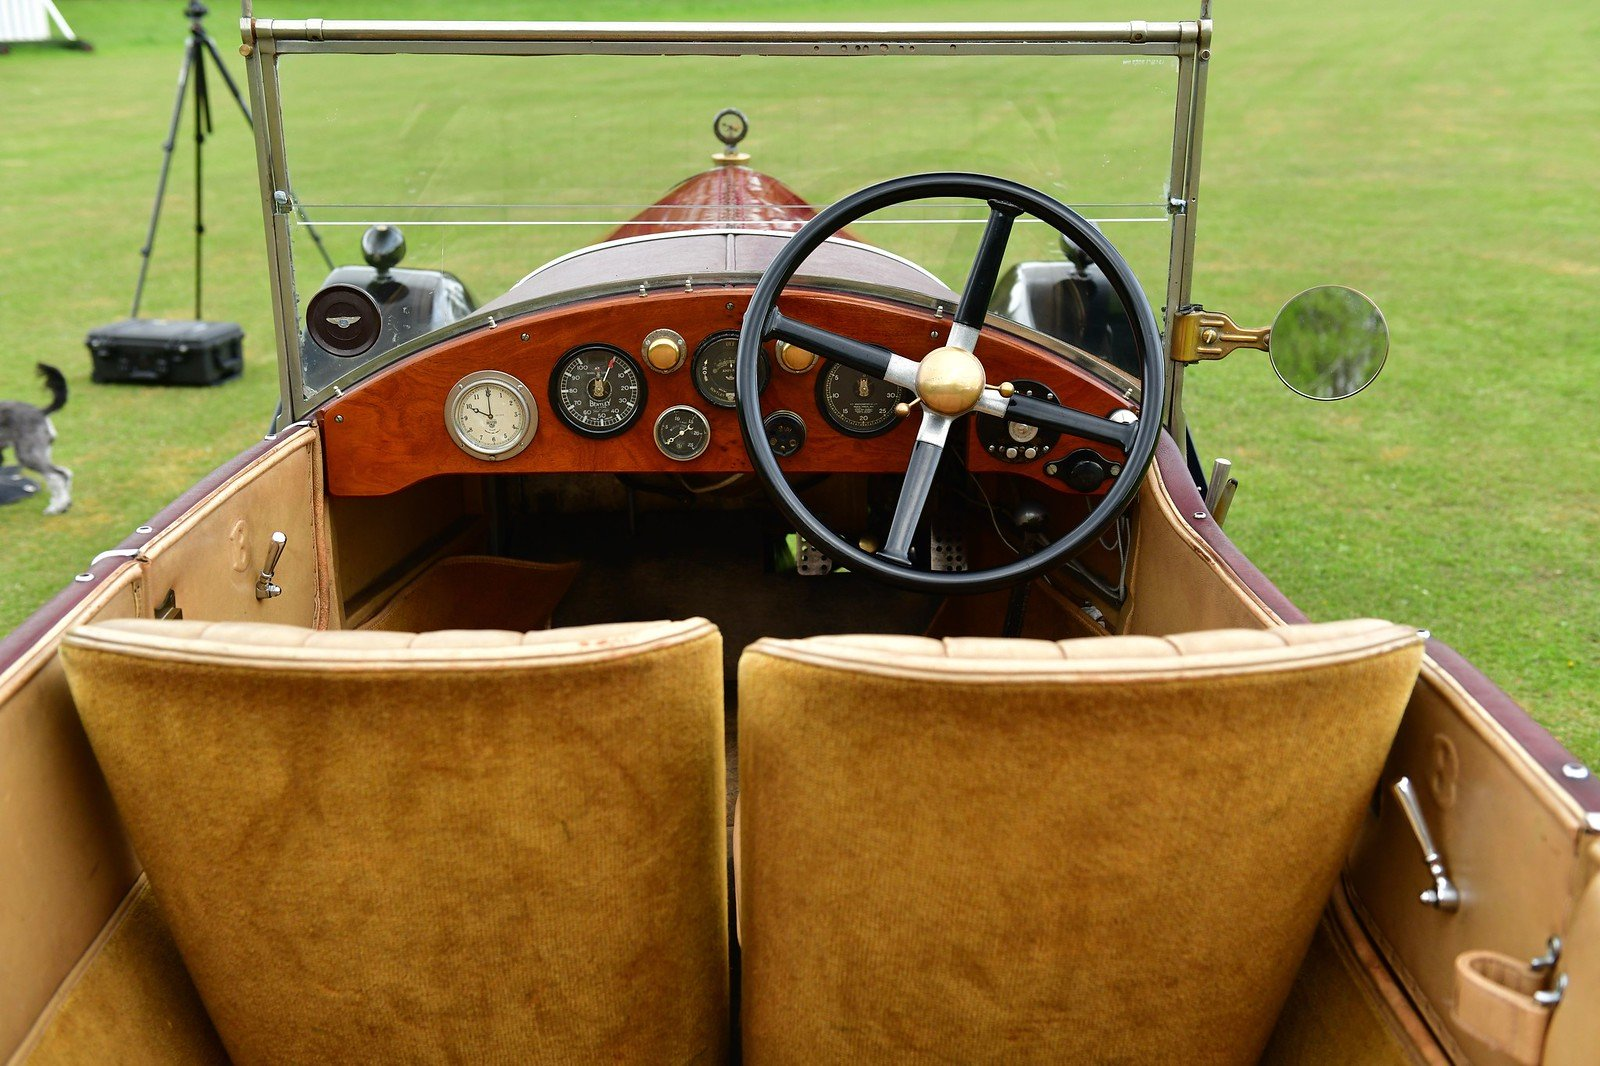 1926 Bentley 3 litre with Vanden Plas Style Body For Sale (picture 4 of 6)